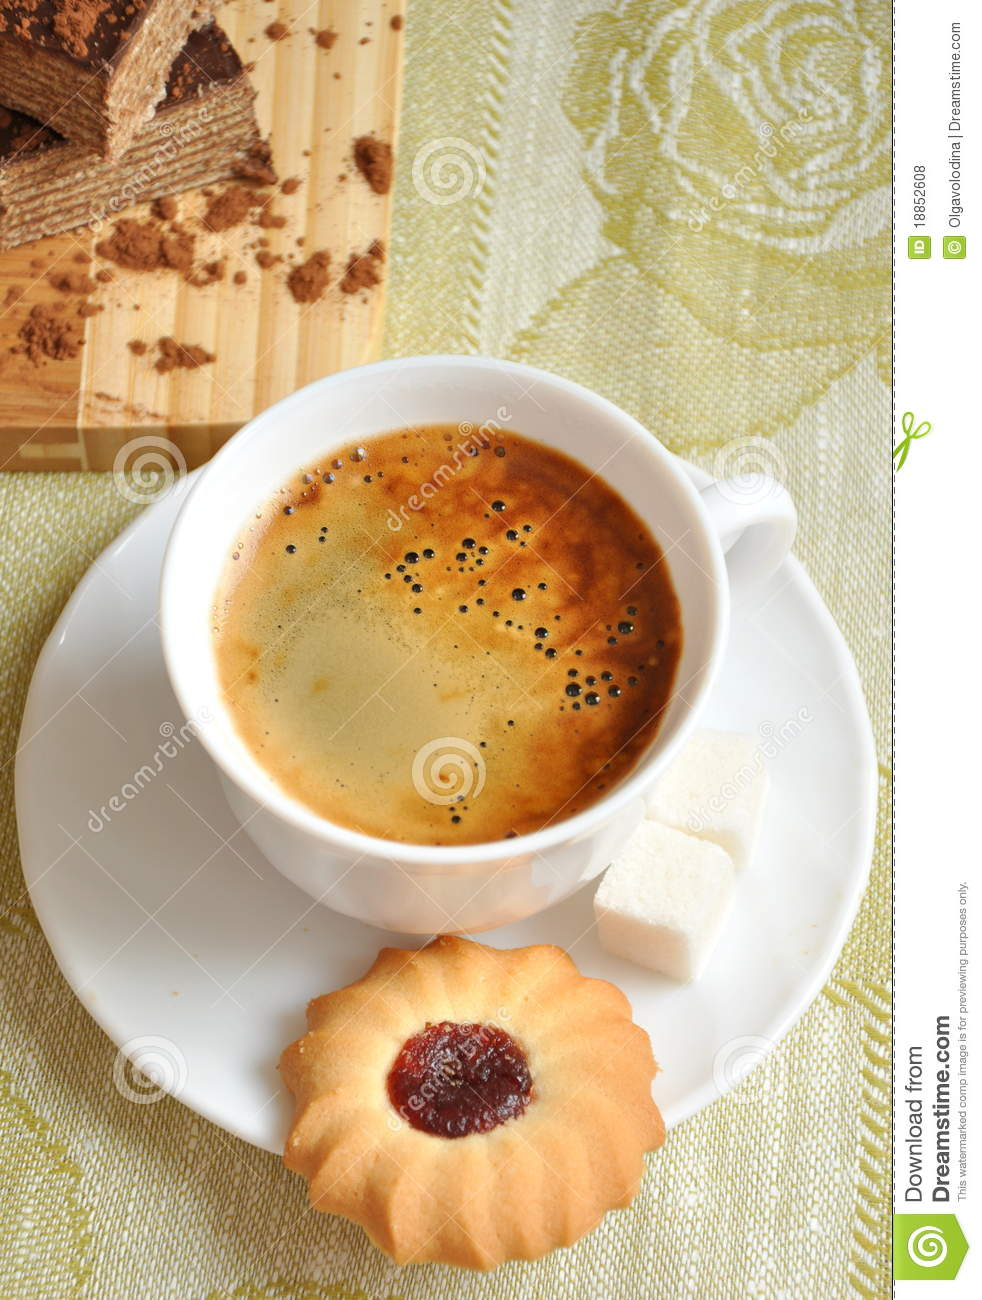 More similar stock images of morning coffee with biscuits and cake